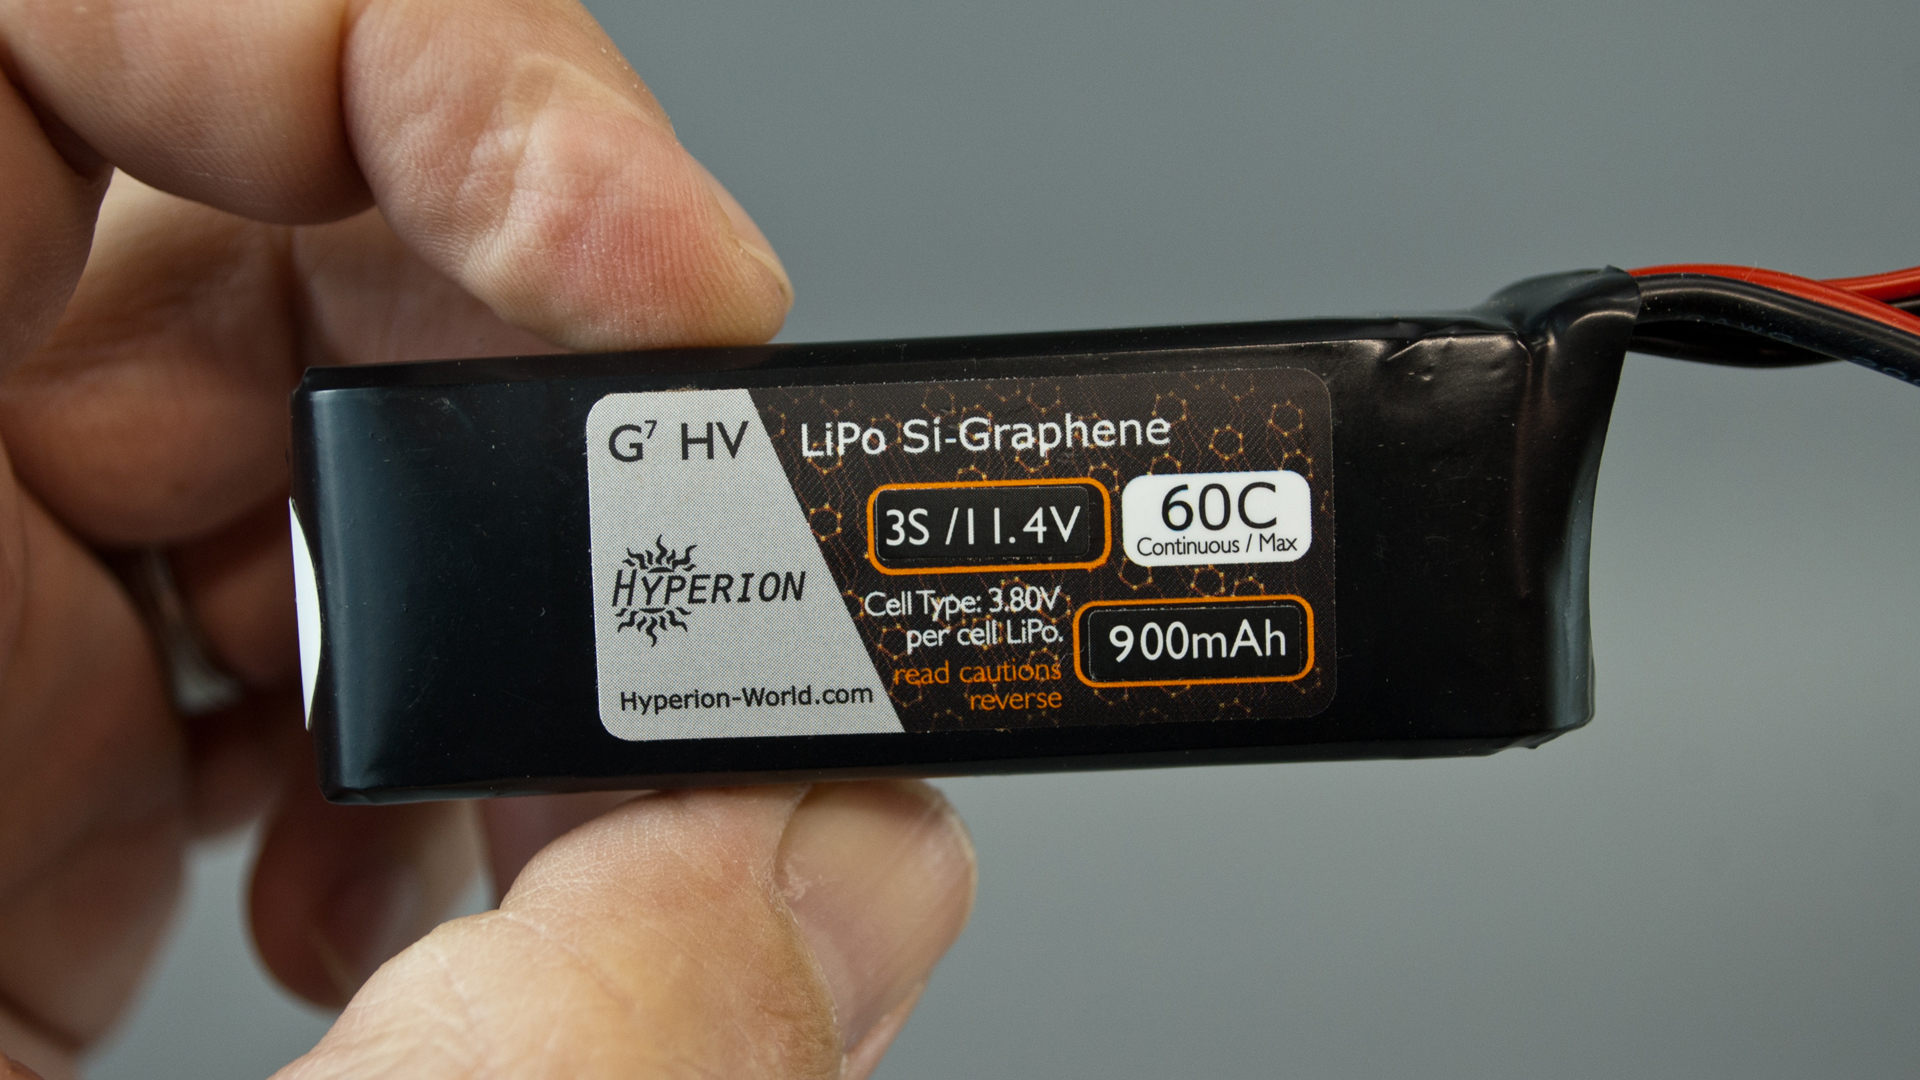 Hobby Rc Testing High Voltage Lipo Batteries Tested Most Power Supplies Use A Circuit Called Lihv Have Slightly More Than Cells This Presents Potential Performance Benefits As Well New Considerations